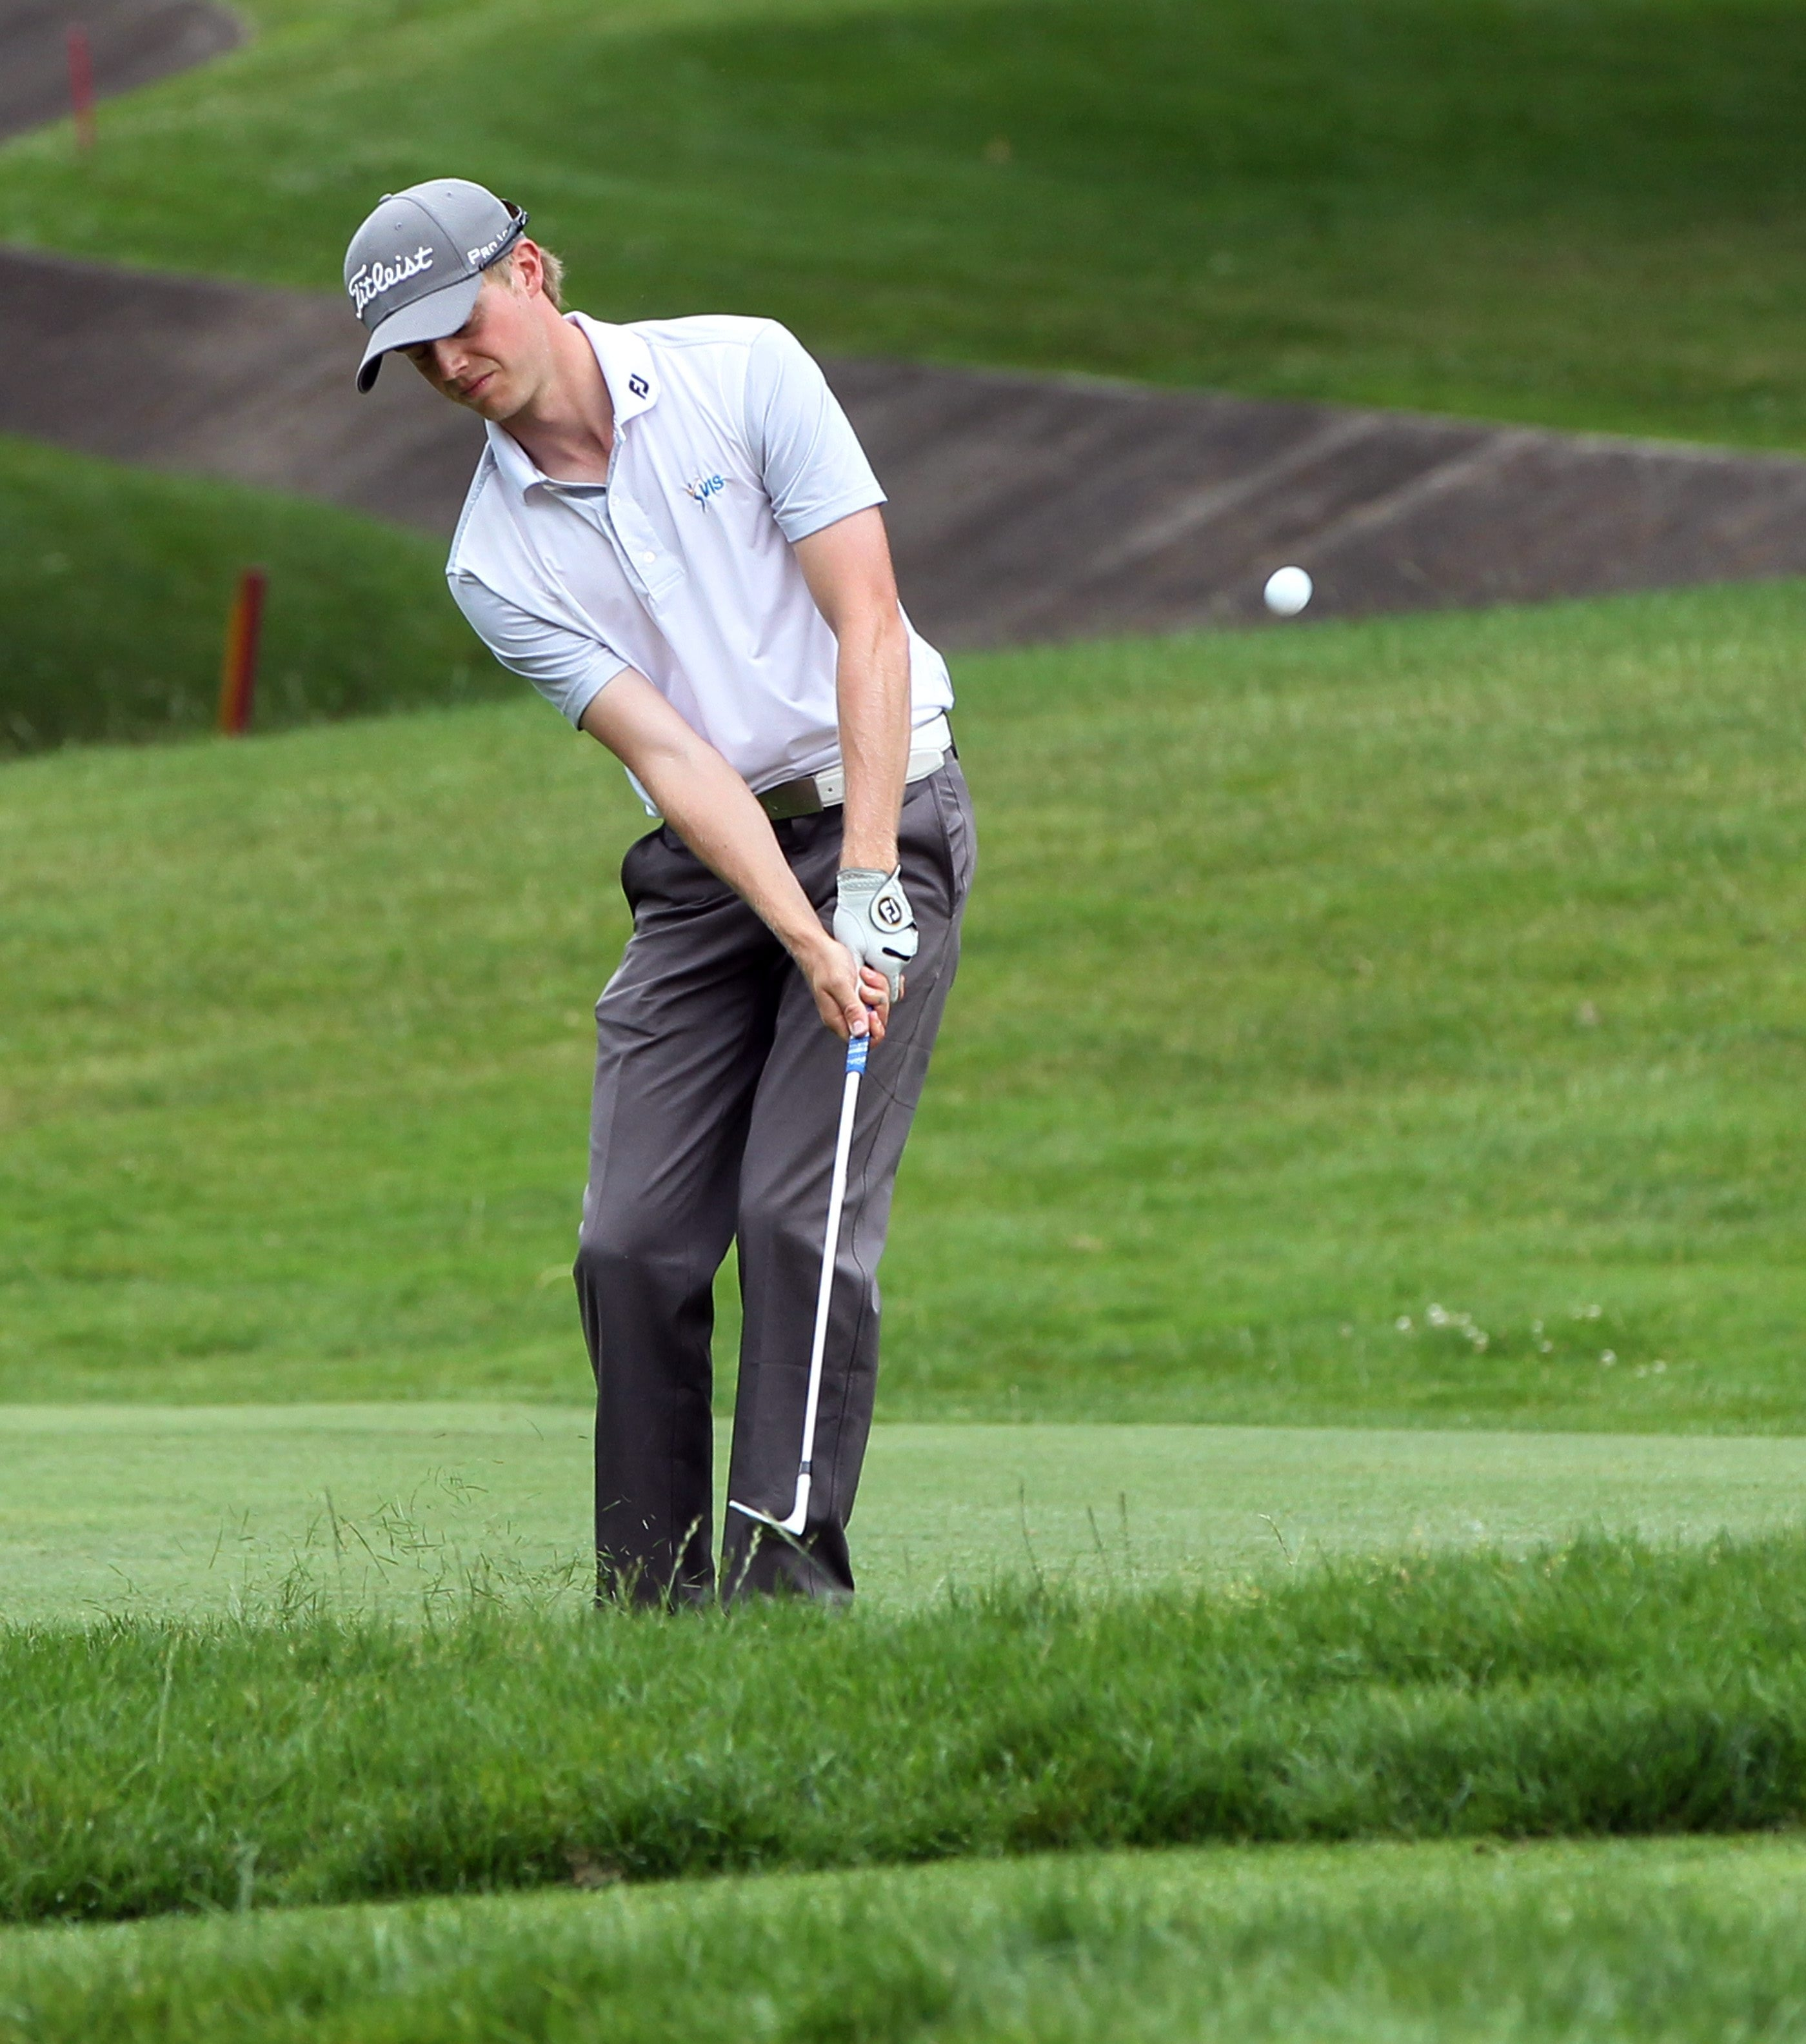 Ben Eccles hits a shot to the green on the 15th hole during the final round of the Porter Cup at the Niagara Falls Country Club.